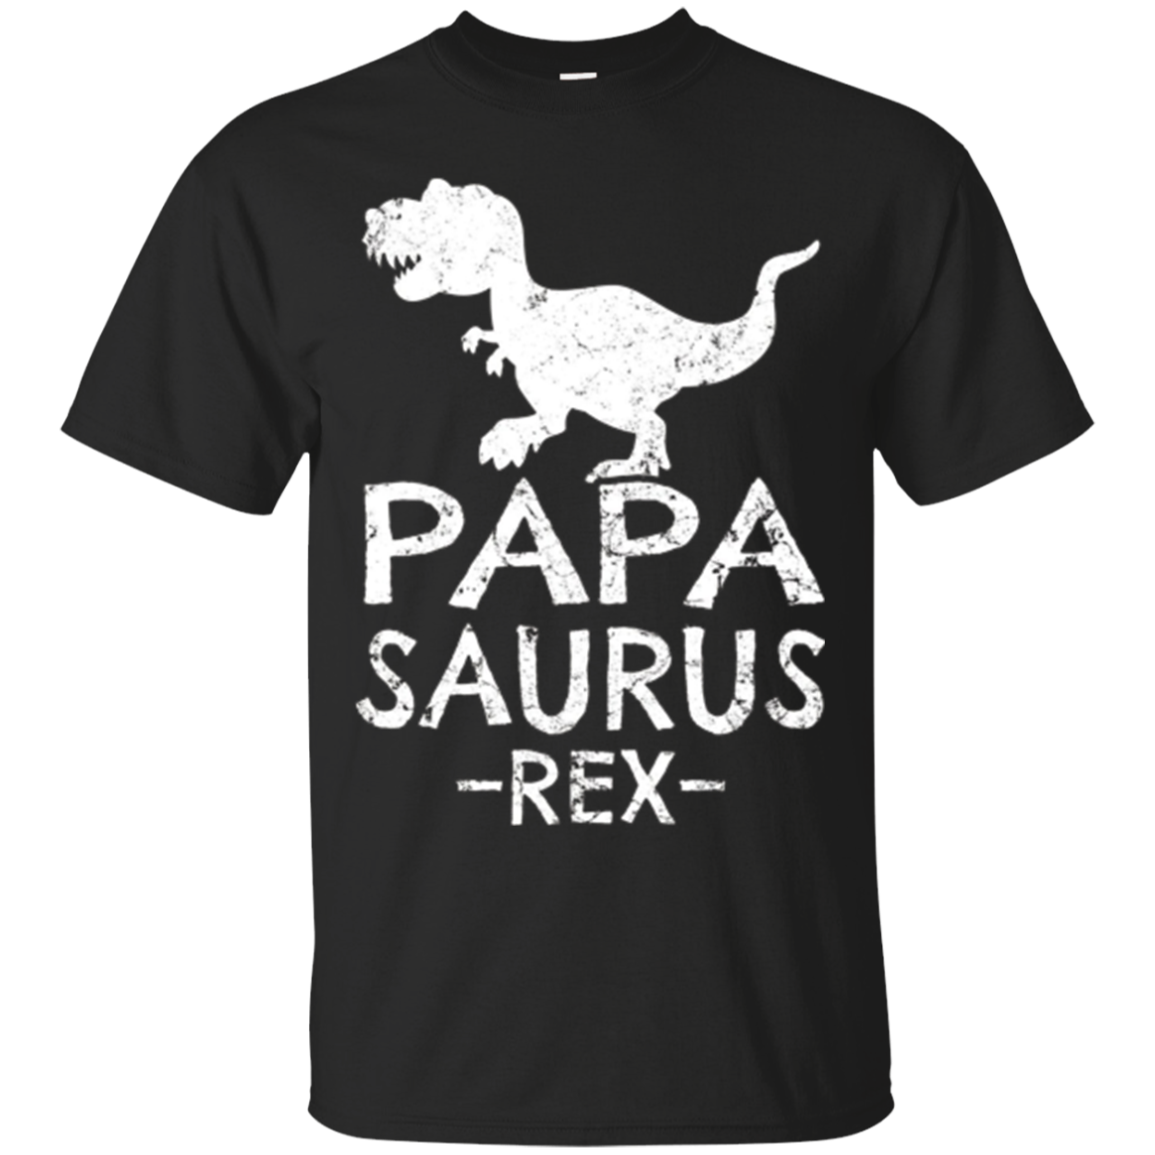 Papa Saurus Rex T-Shirt Gifts for Dad